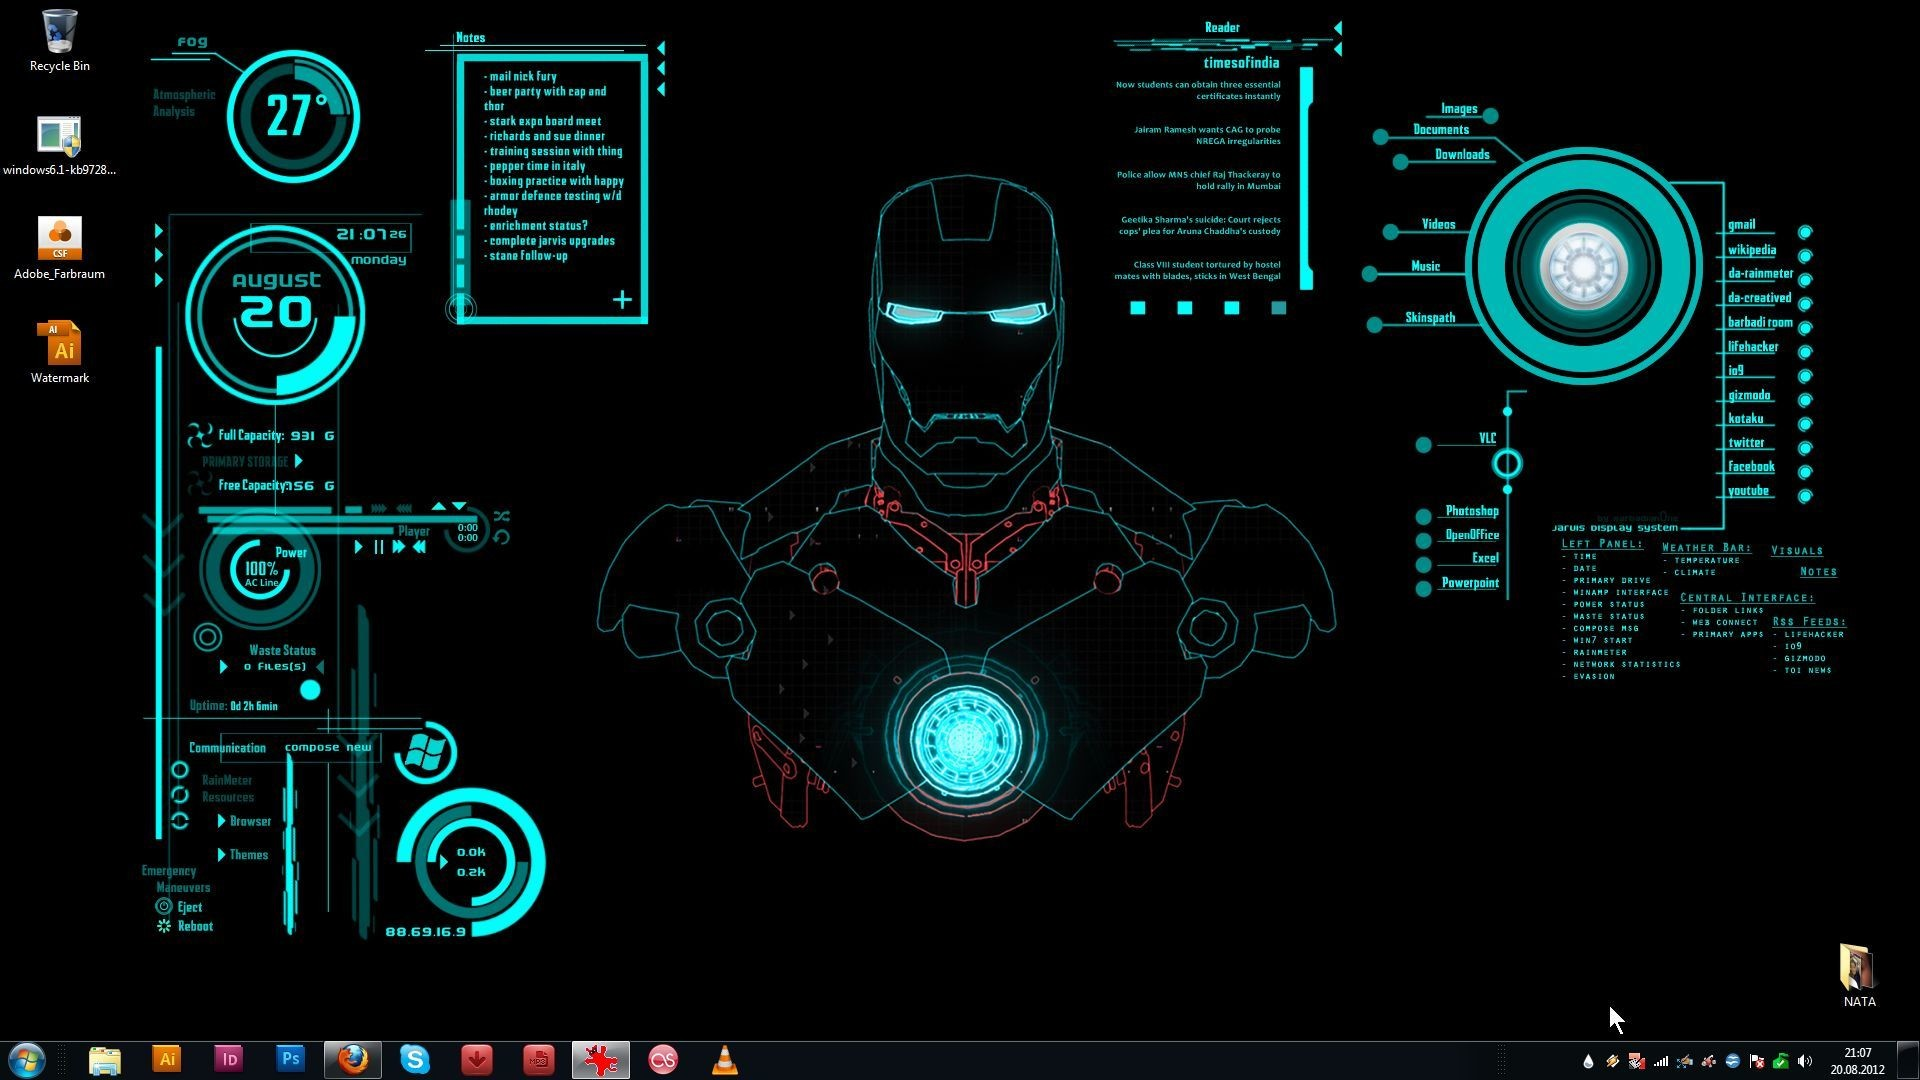 Iron man jarvis wallpapers wallpapertag - Jarvis hd wallpaper for pc ...